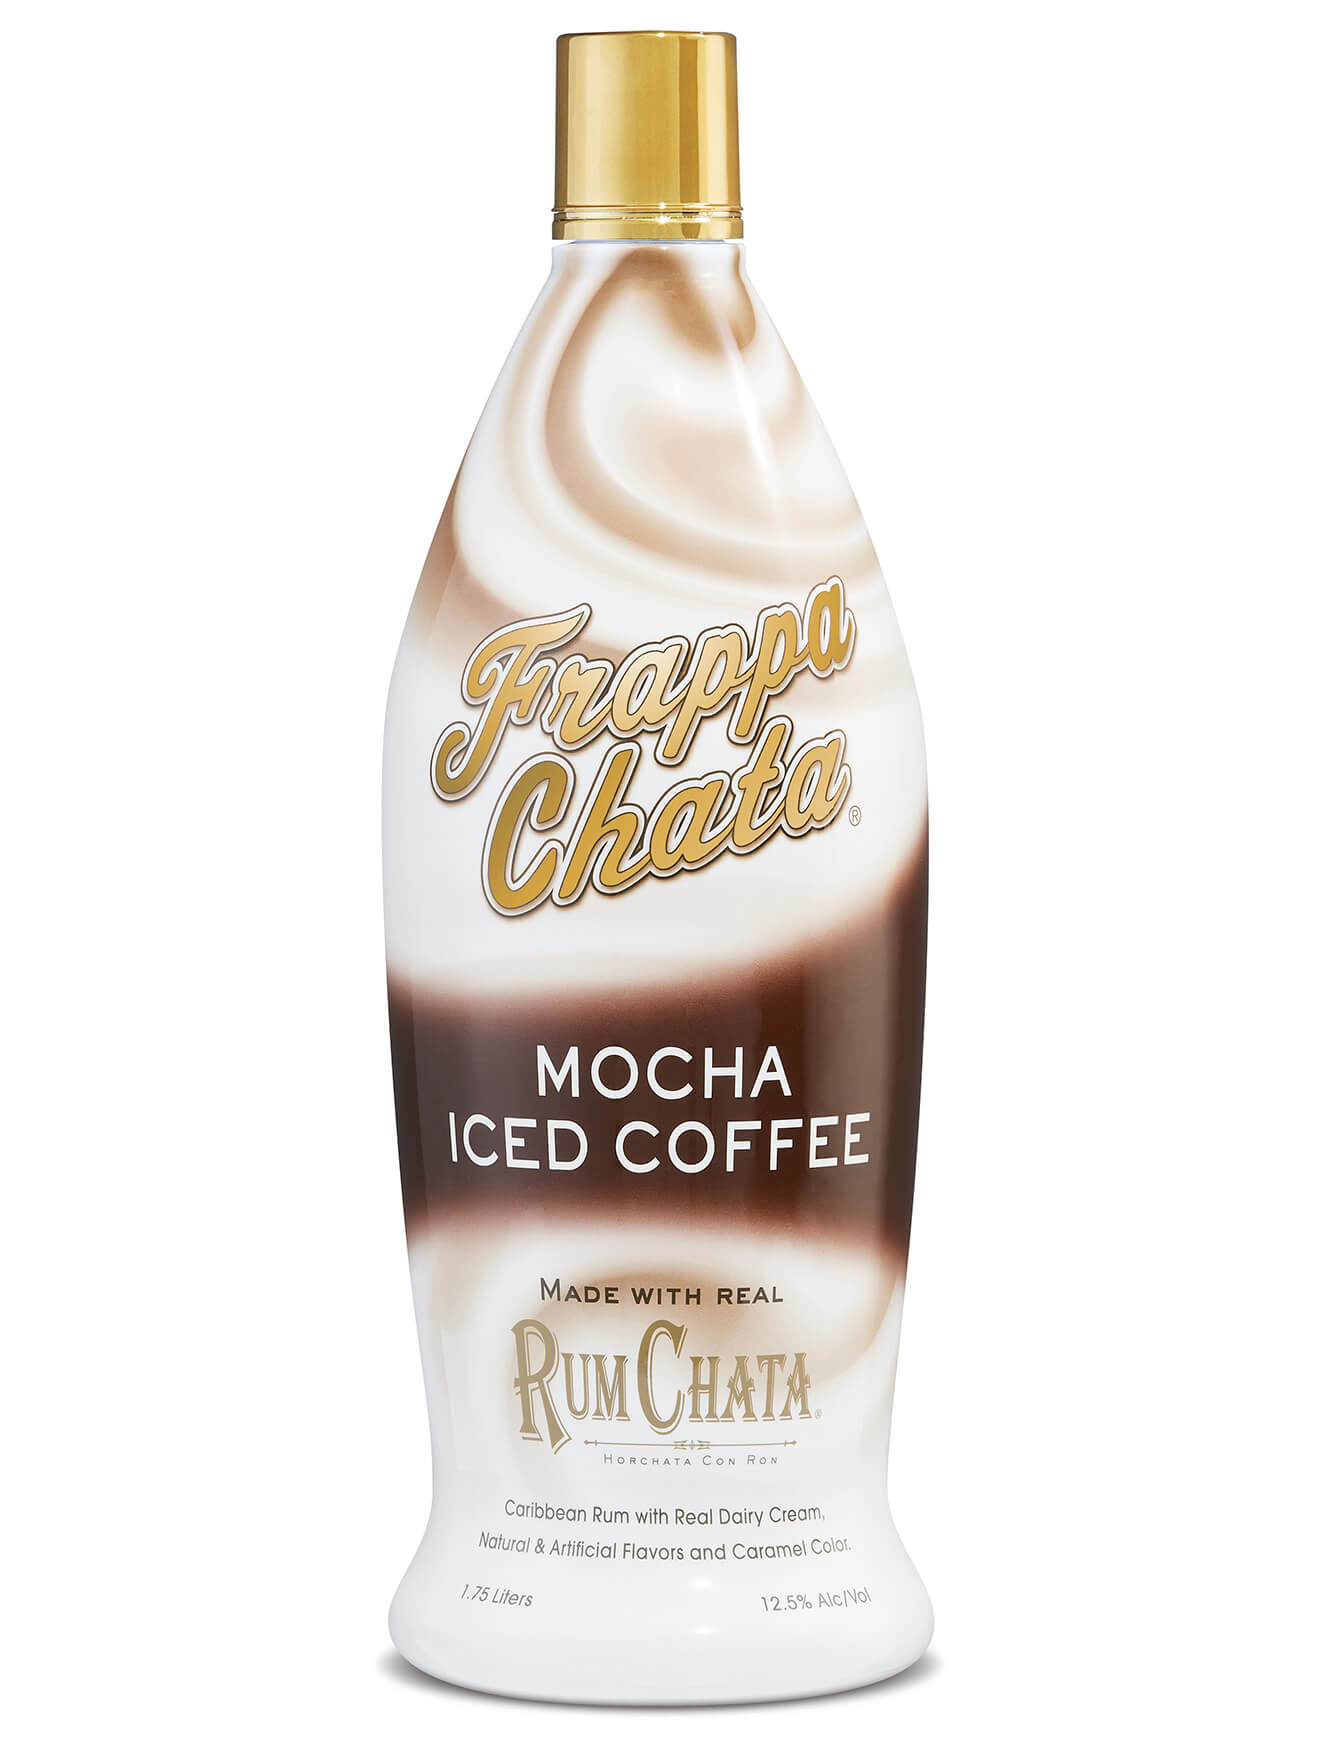 FrappaChata Iced Coffee Mocha Flavor, bottle on white